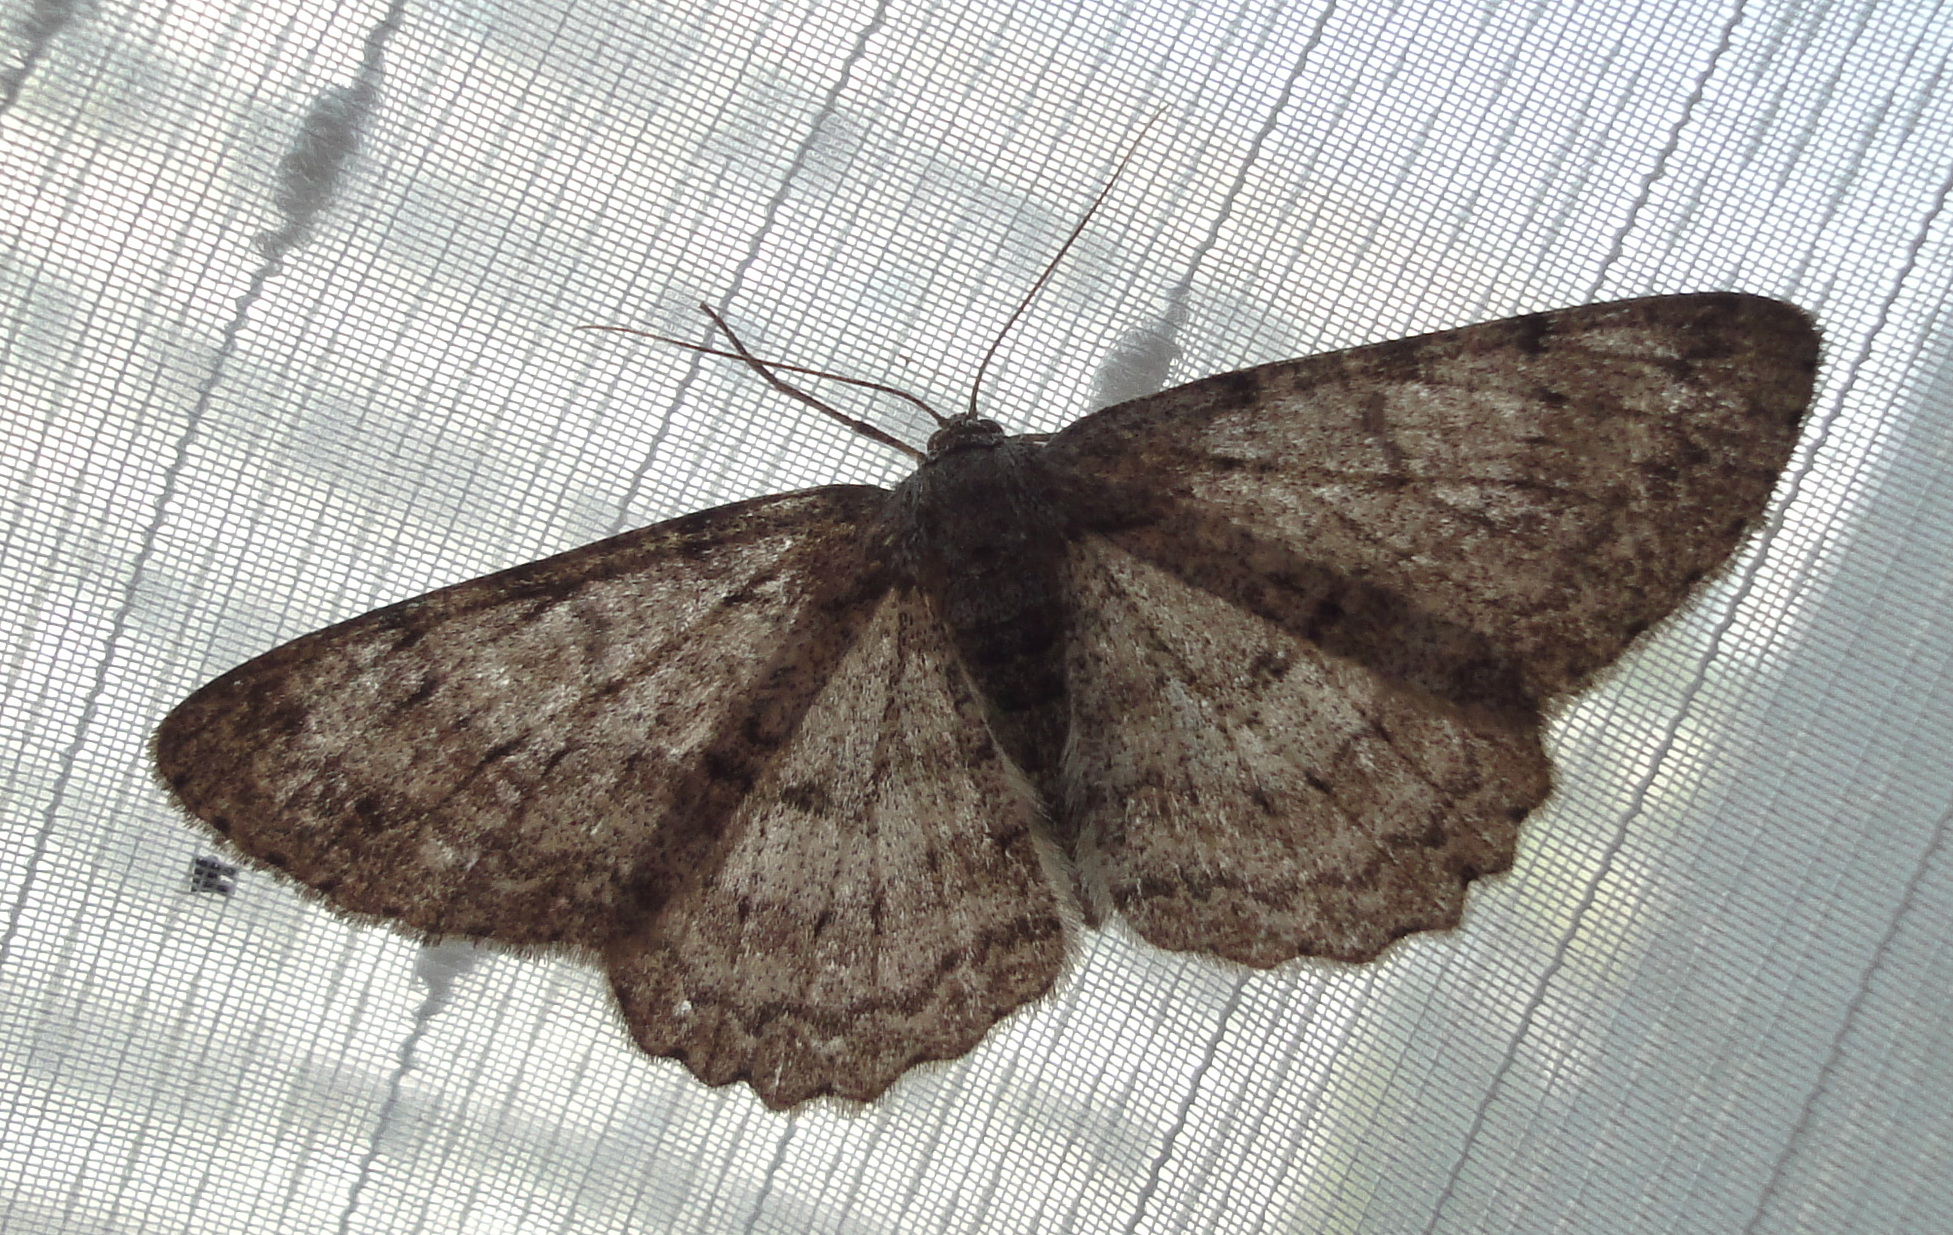 The Engrailed